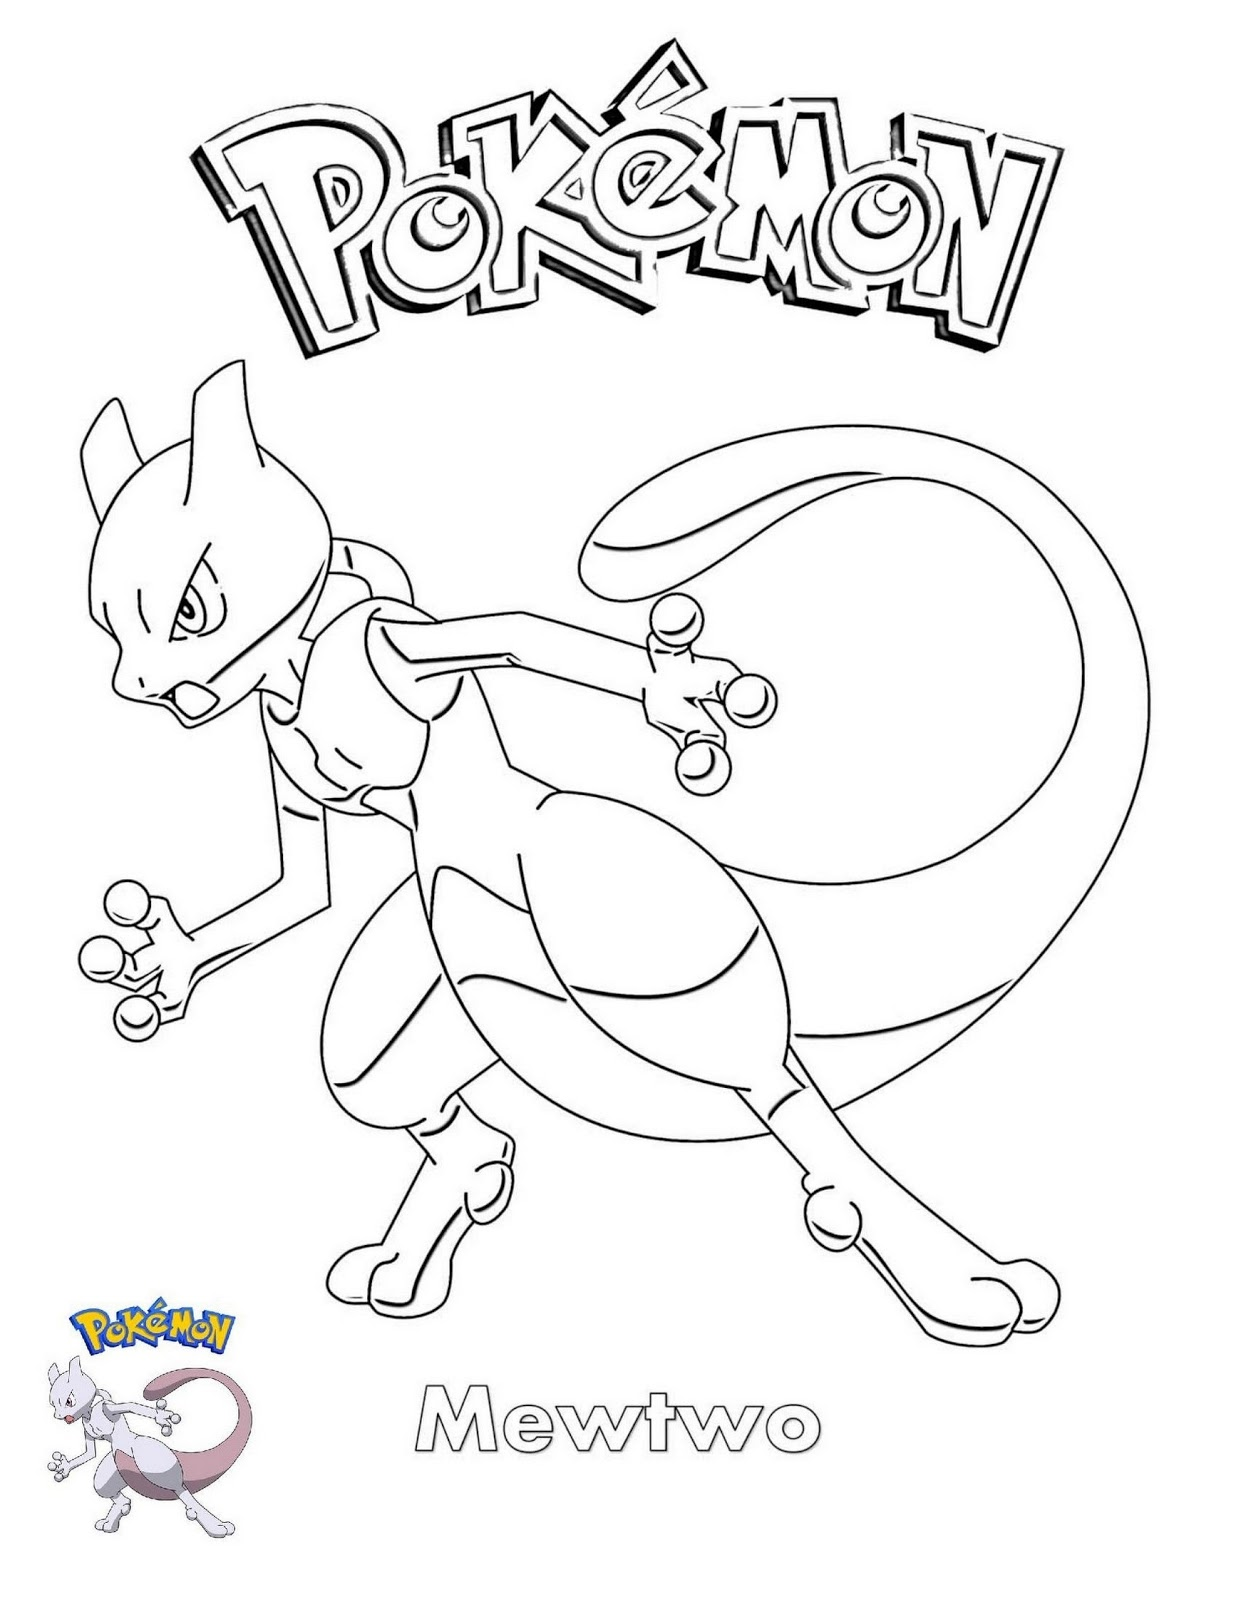 Mewtwo Coloring Pages Printable - Free Pokemon Coloring Pages